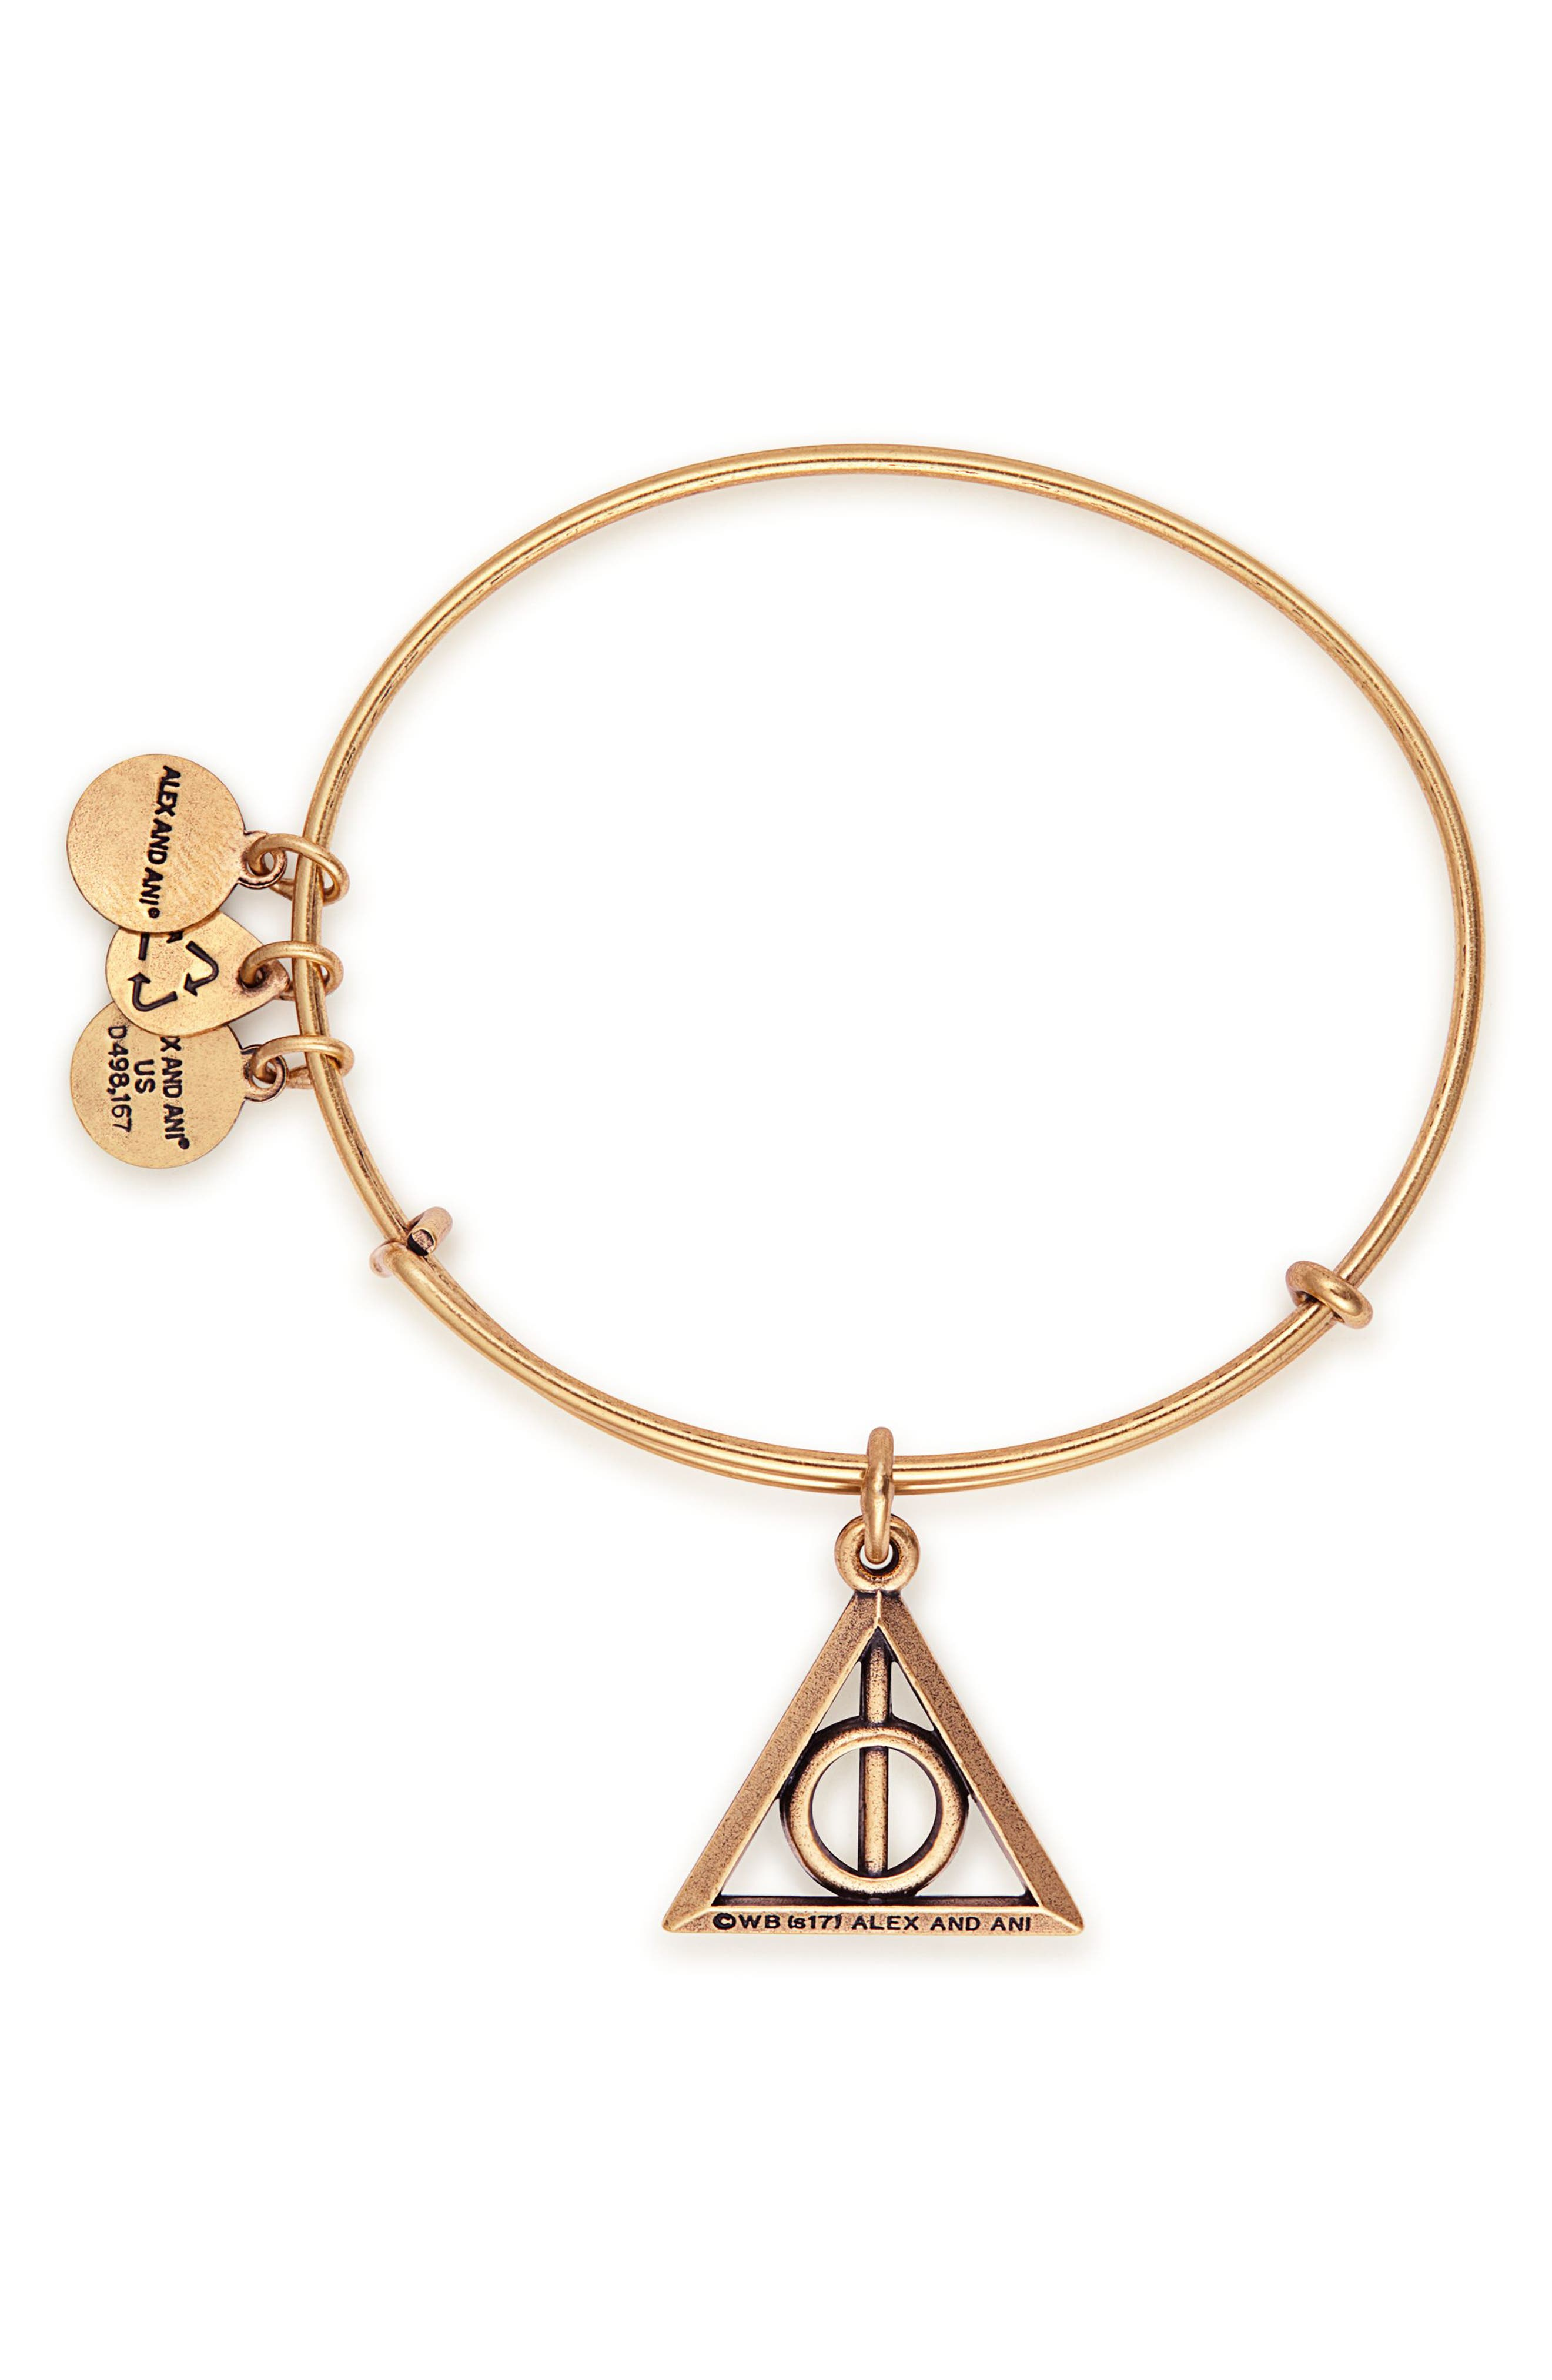 Harry Potter<sup>™</sup> Deathly Hallows<sup>™</sup> Adjustable Wire Bangle,                             Alternate thumbnail 2, color,                             GOLD